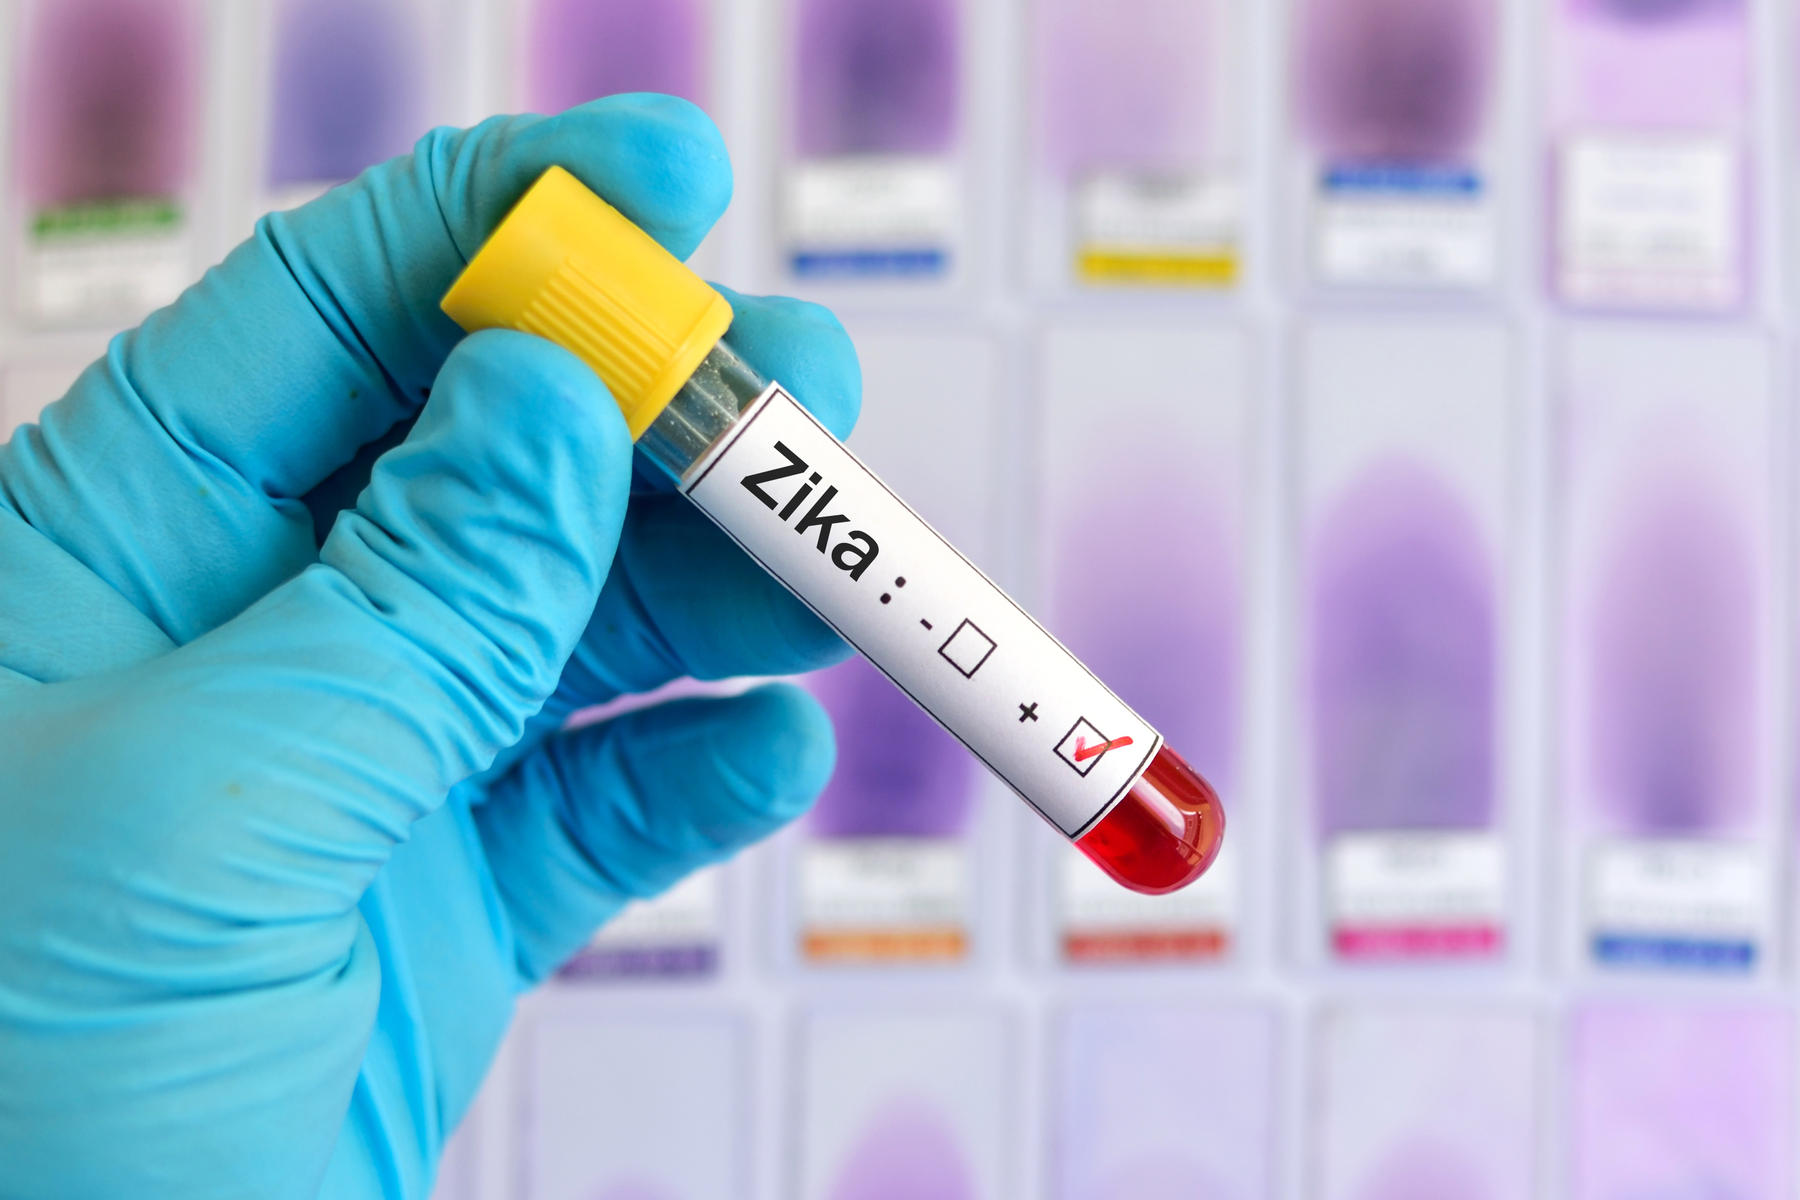 Zika Virus test tube